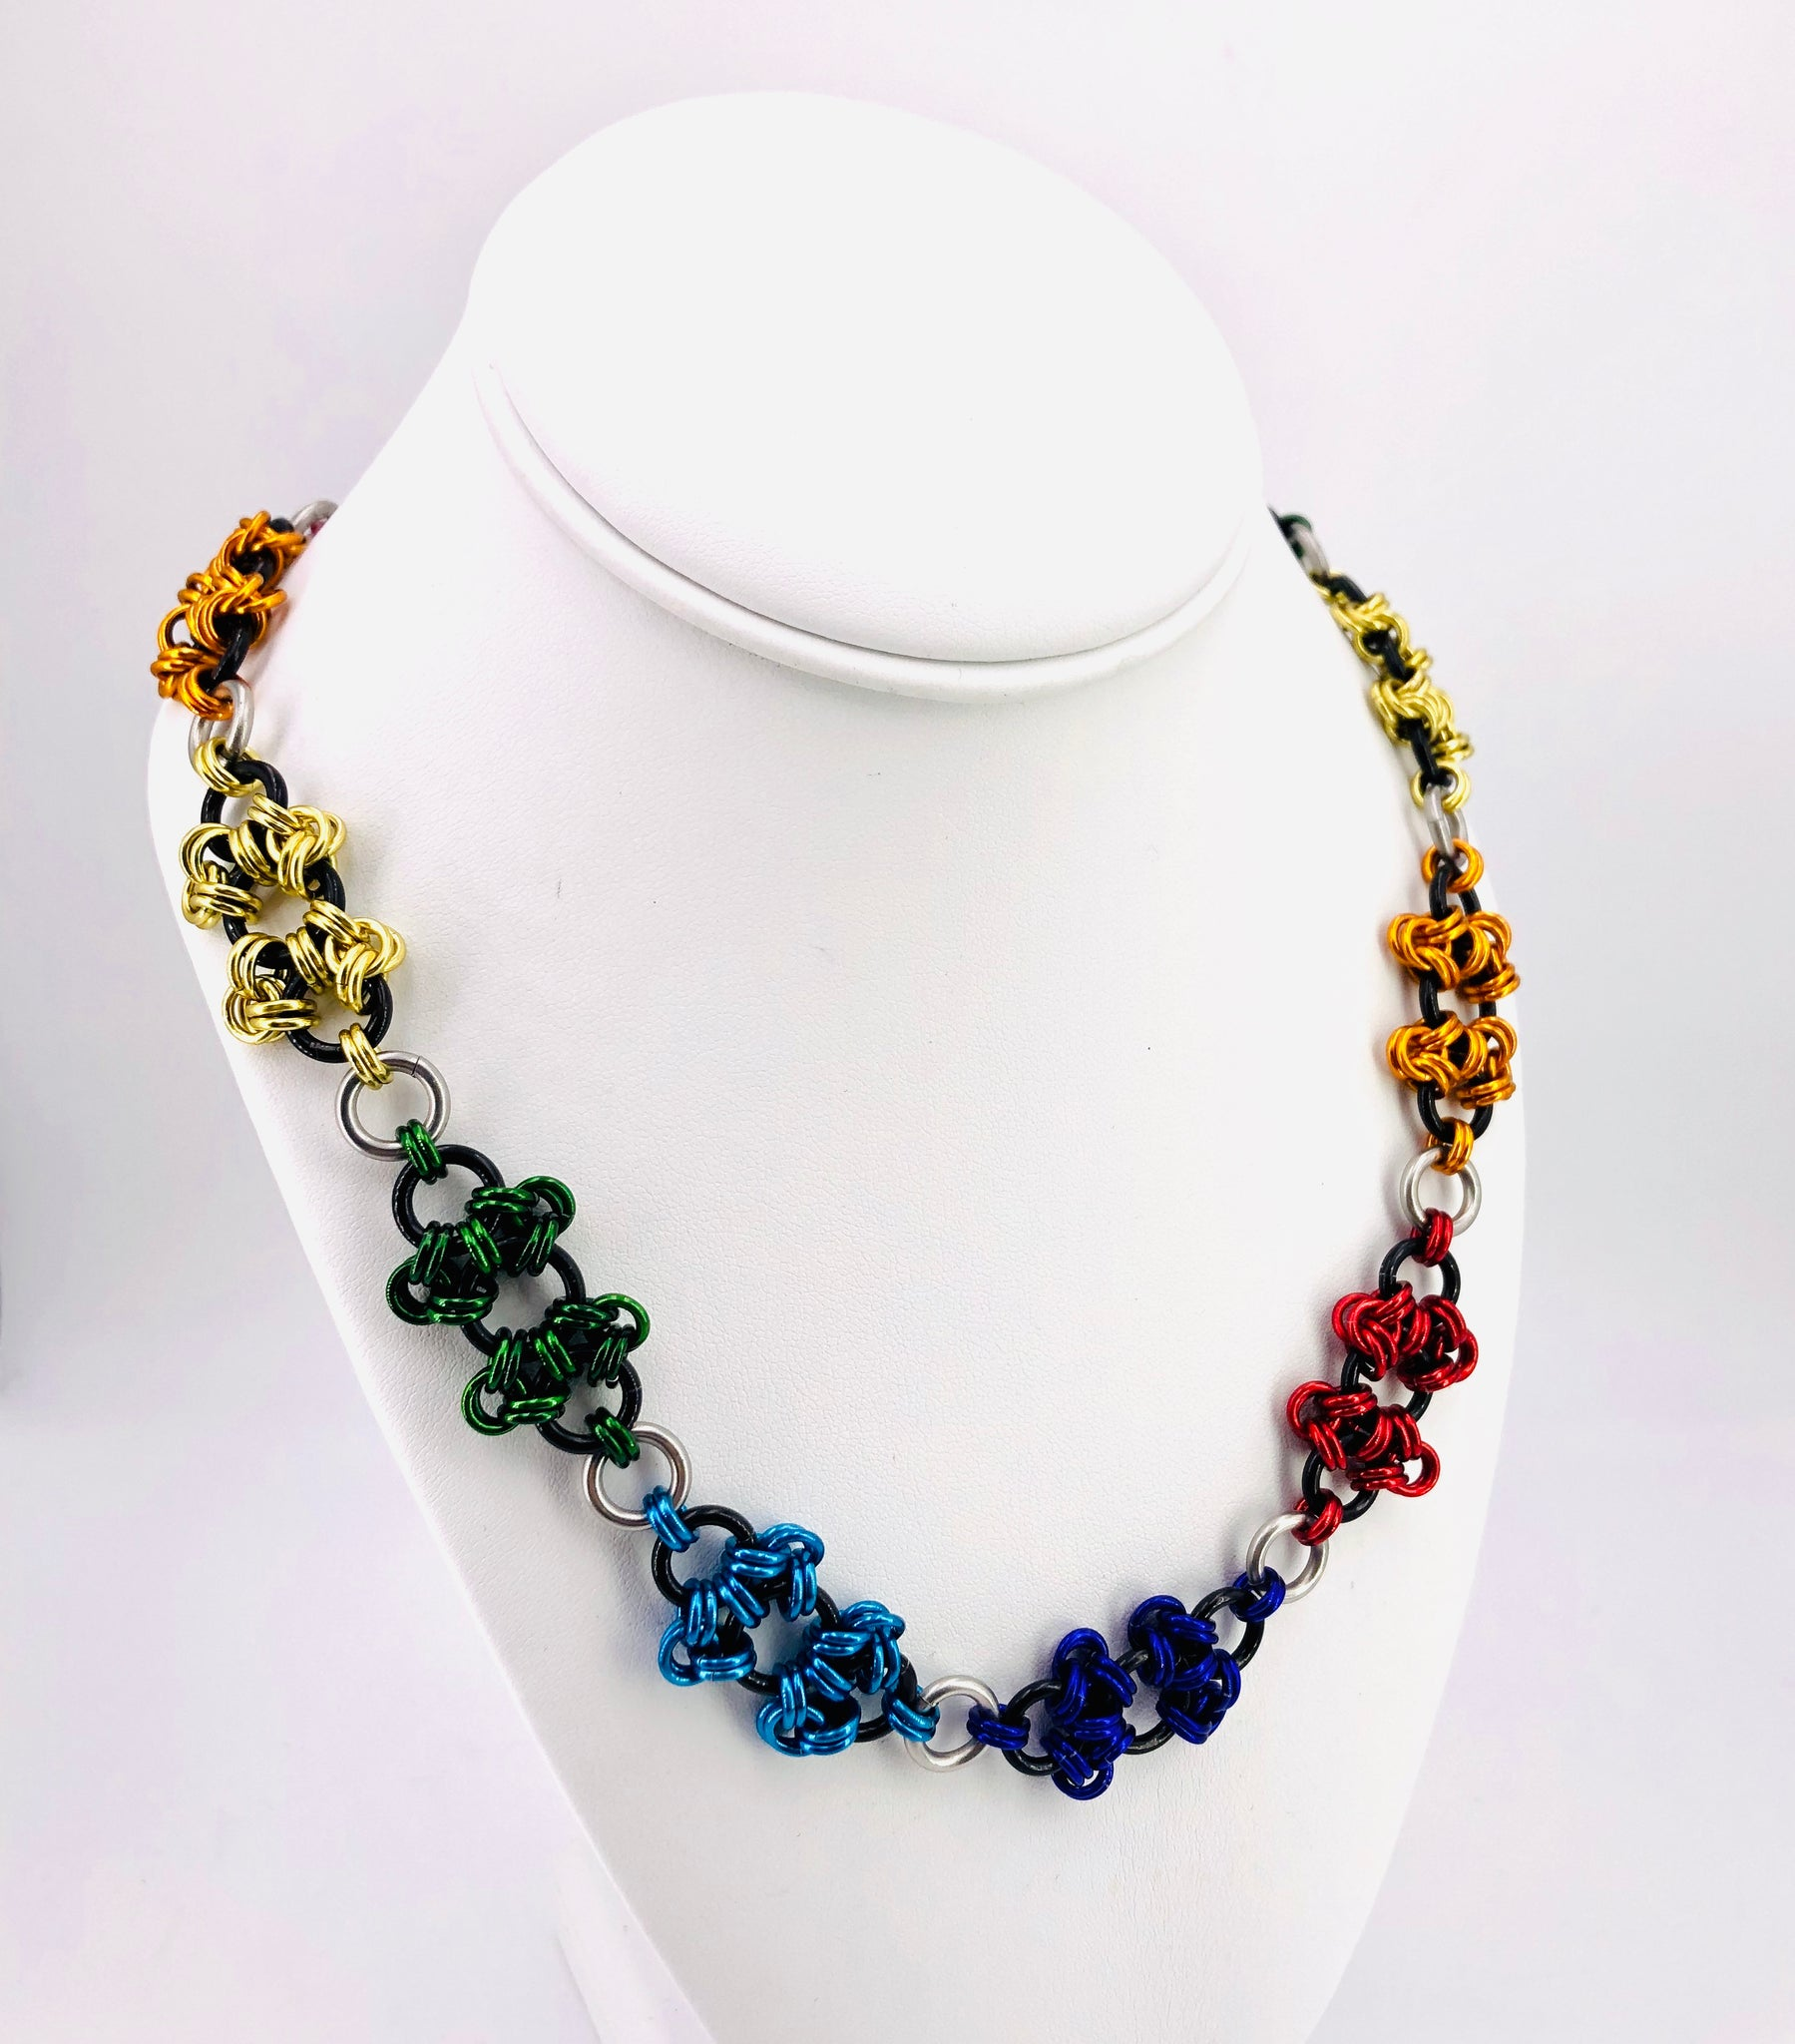 Rainbow Pride Chainmaille Necklace